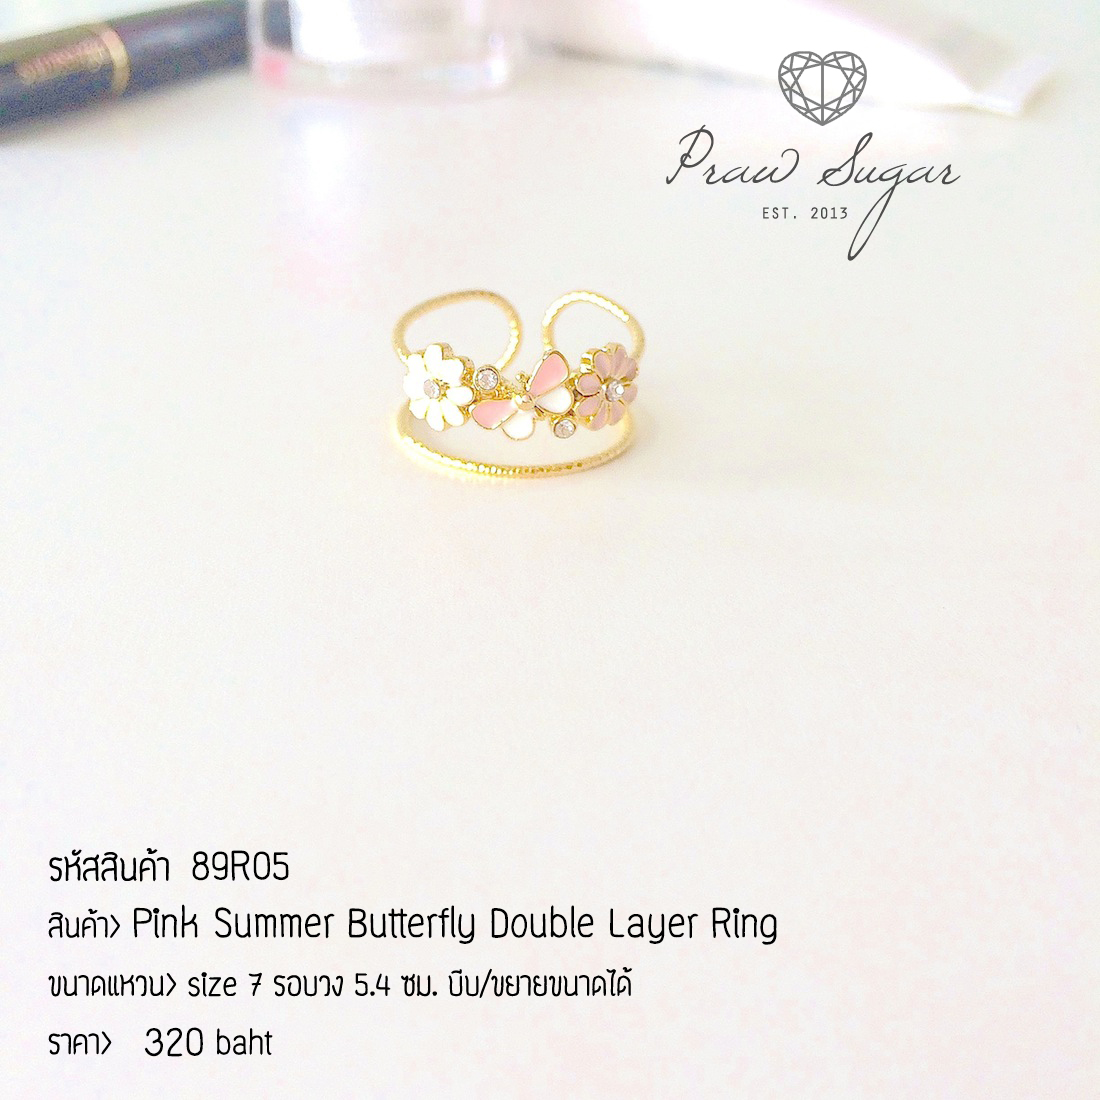 Pink Summer Butterfly Double Layer Ring